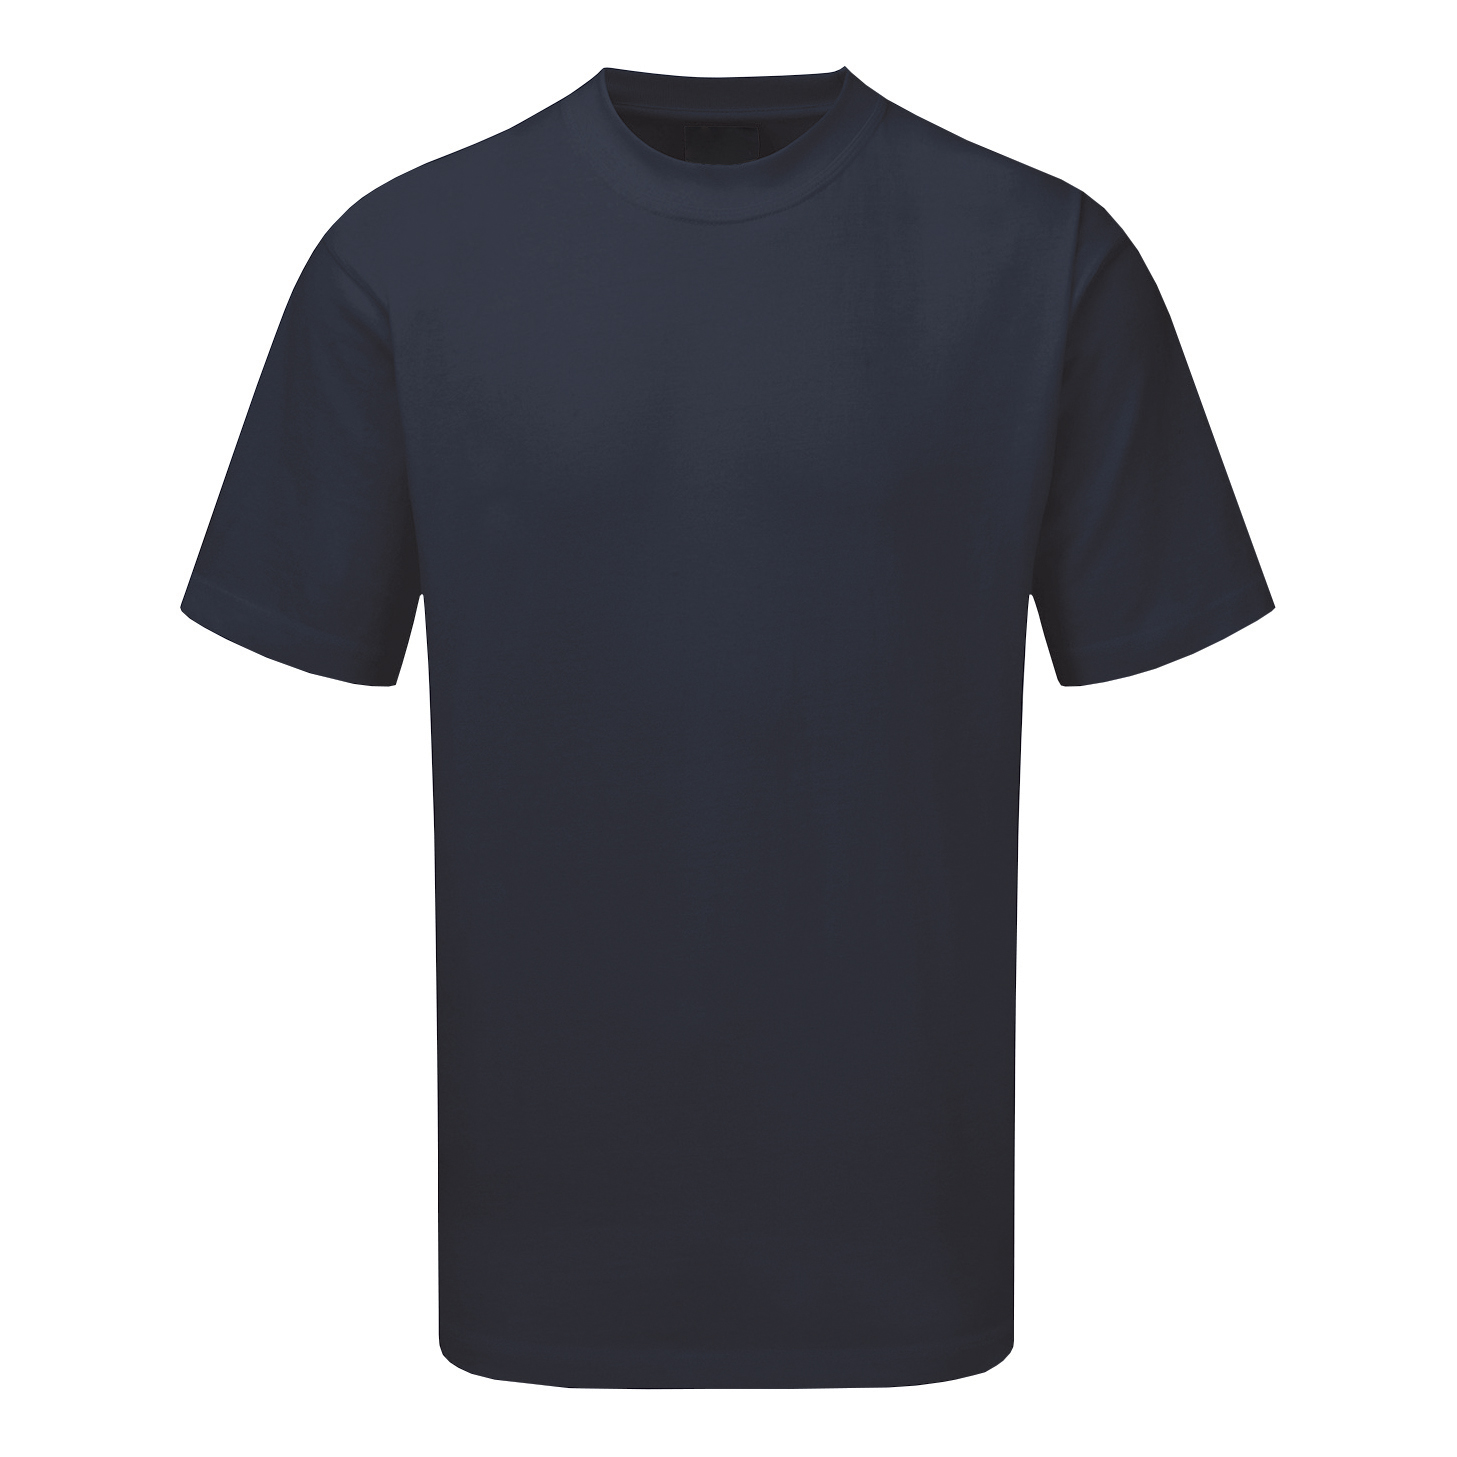 Business T Shirt Premium Polycotton Triple Stitched Size 5XL Navy